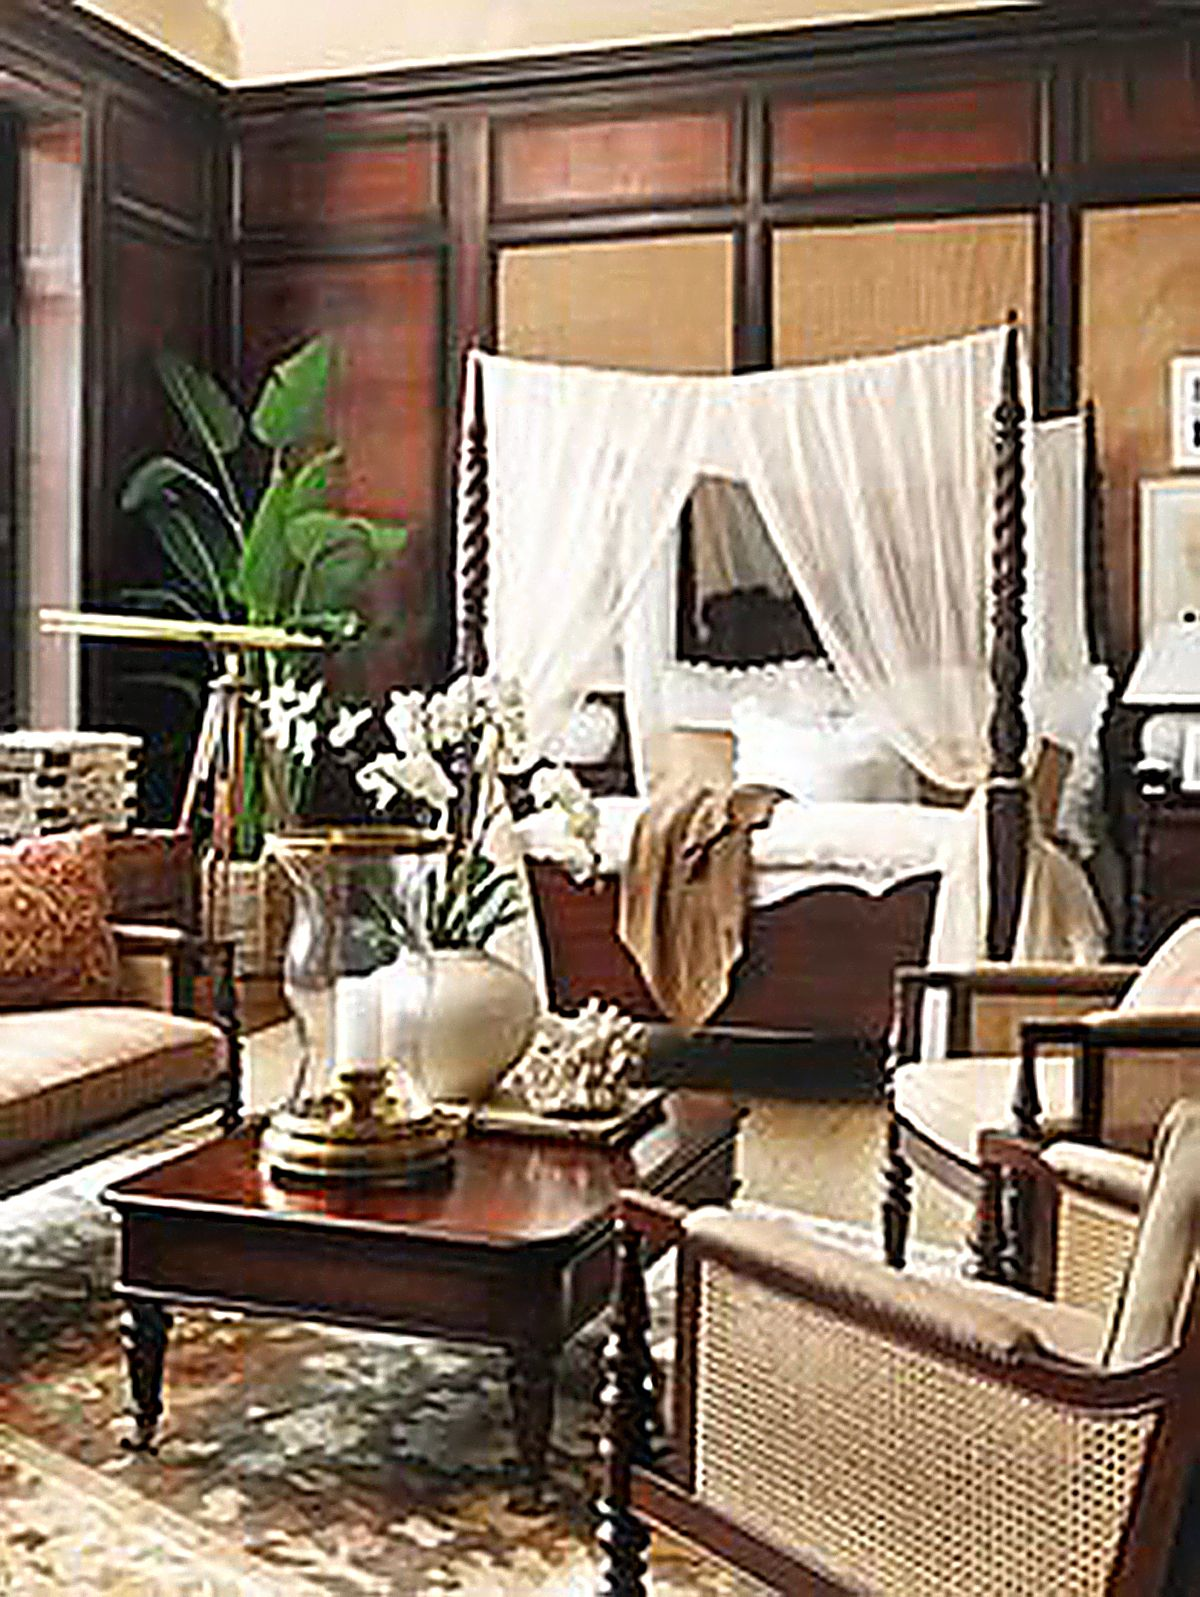 Tropical Colonial Style Bedroom Furniture Interior Design Pinterest Furniture Style And